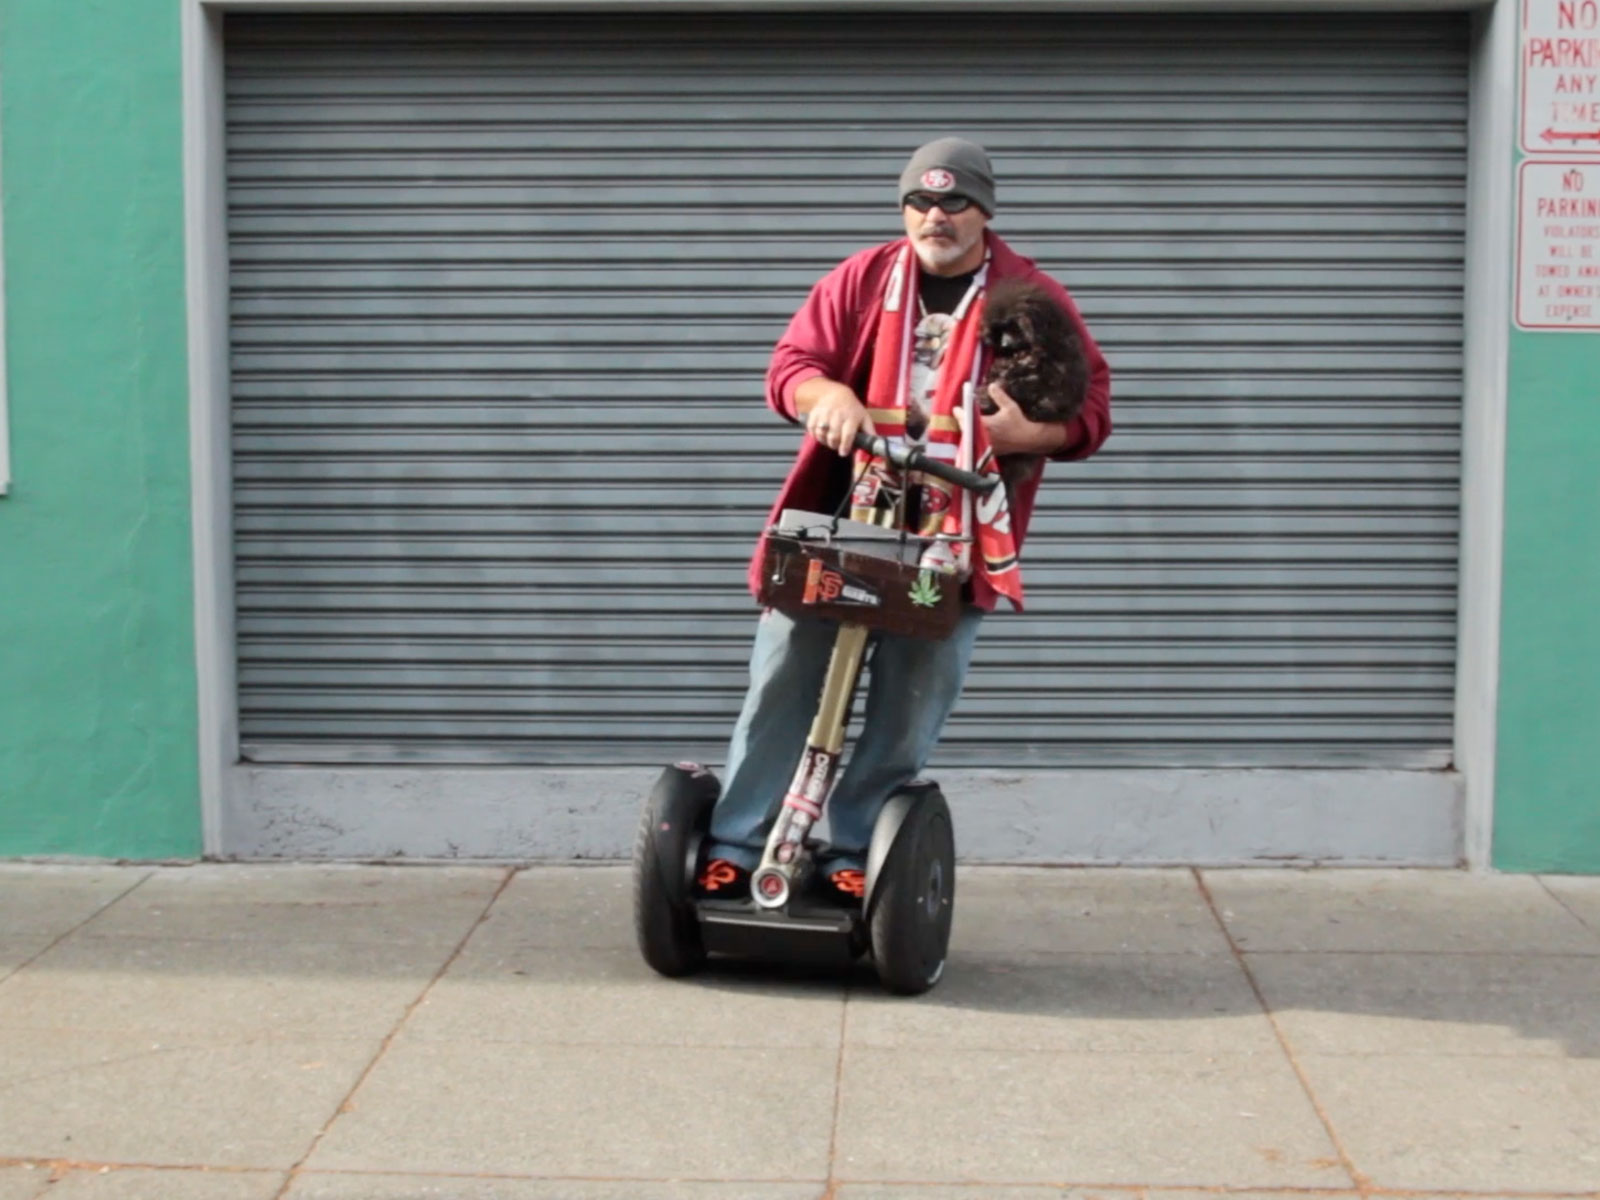 VIDEO: The Mission Segway Guy: John Marksman